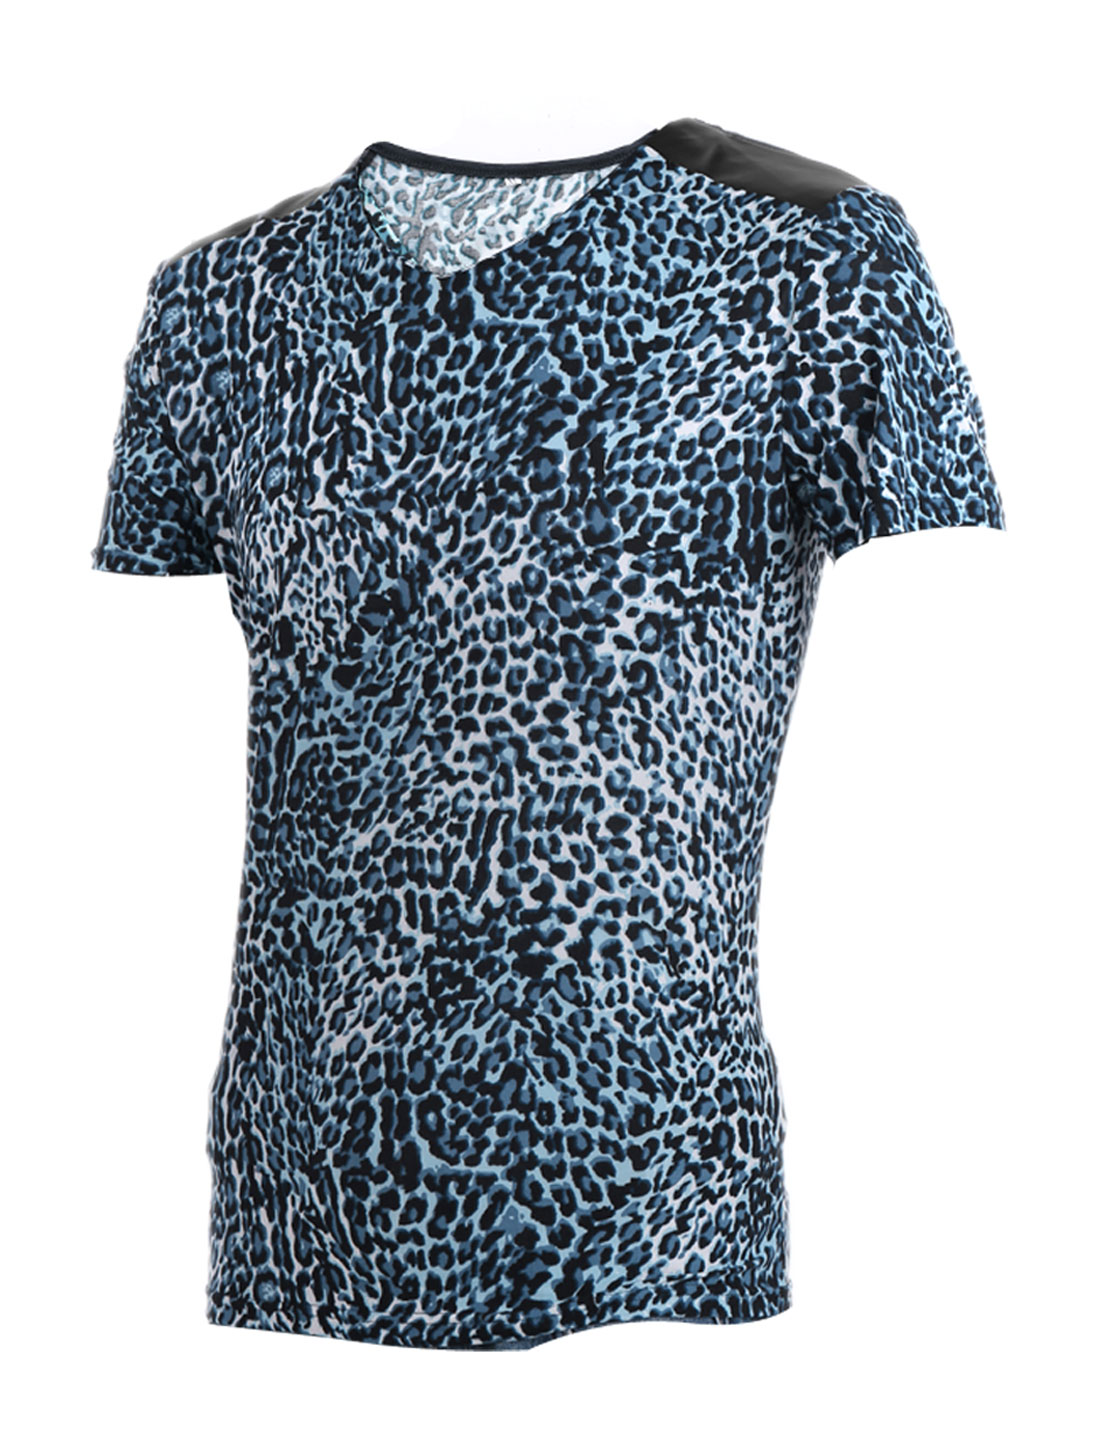 Men Blue Black Stylish Leopard Prints Stretch Slim Summer Tee Shirt L